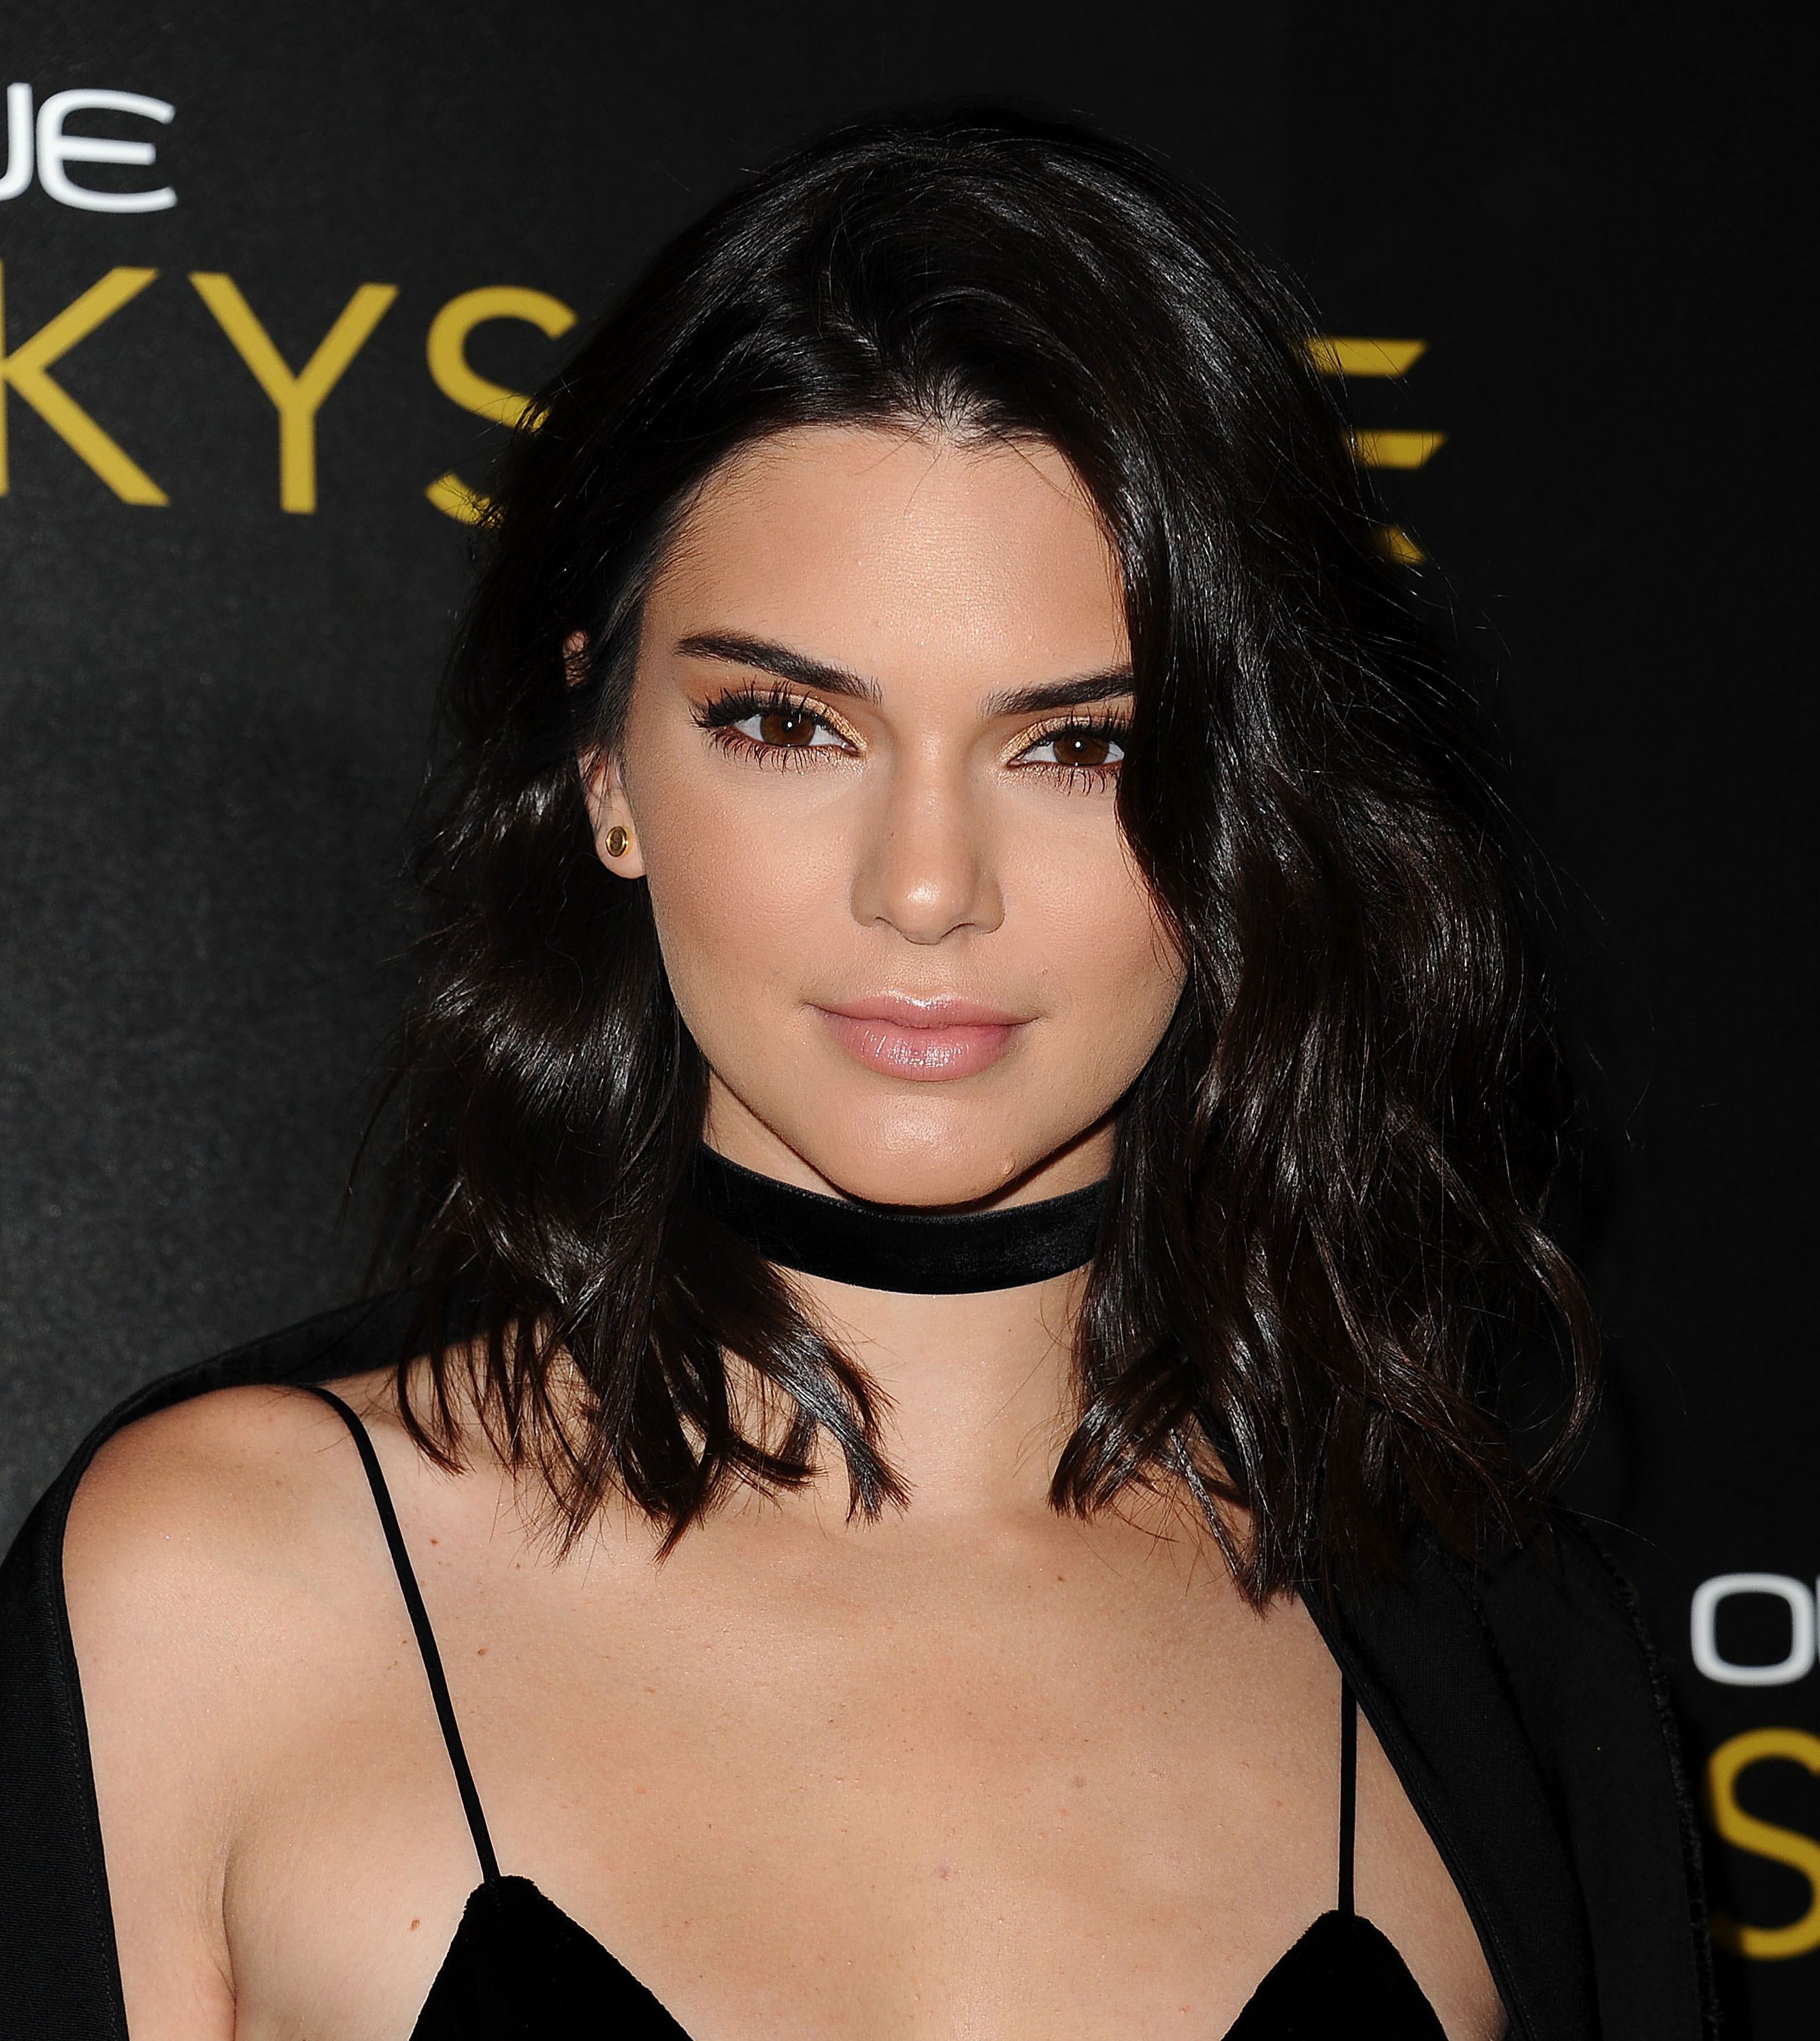 89b86d209 A Comprehensive Guide To Kendall Jenner's Tattoos (And Their Meanings!)